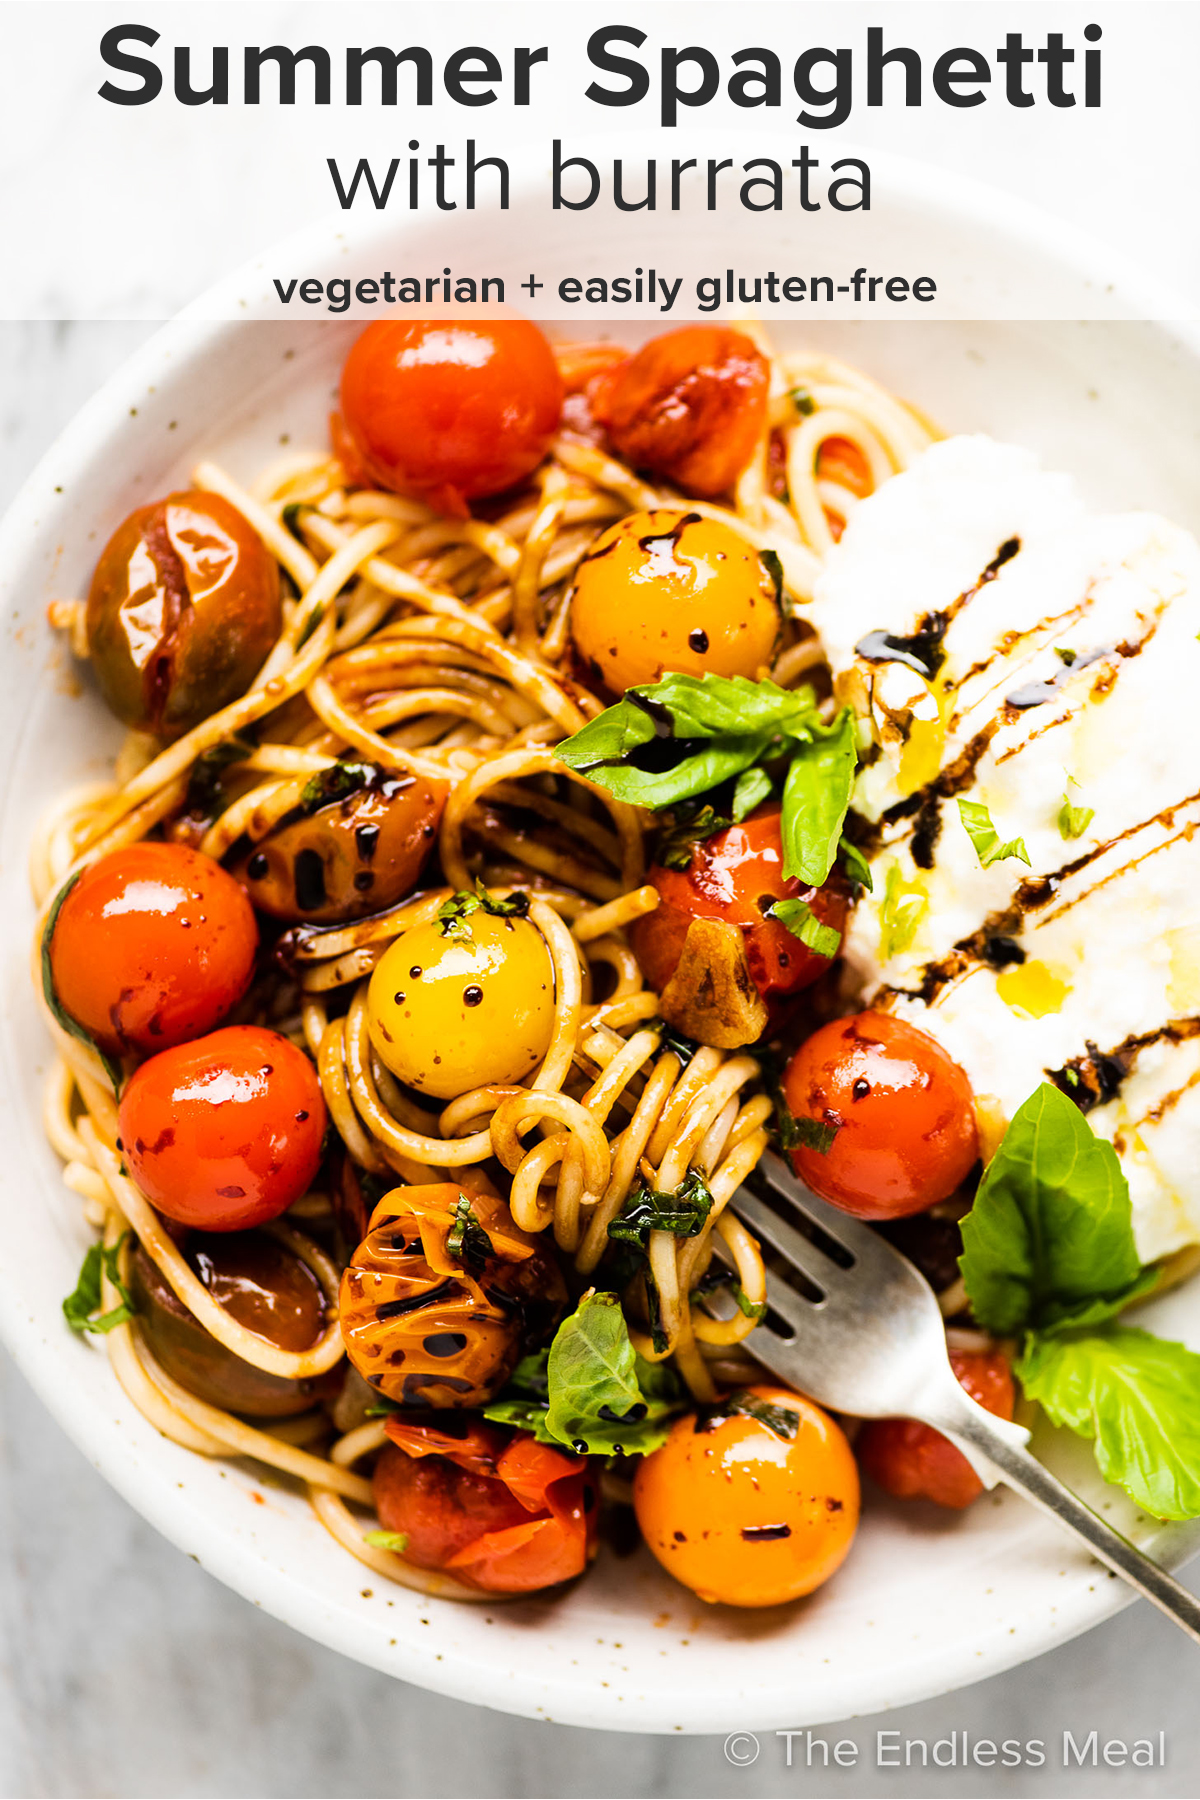 Summer spaghetti in a white plate with burrata and the recipe title on top of the picture.